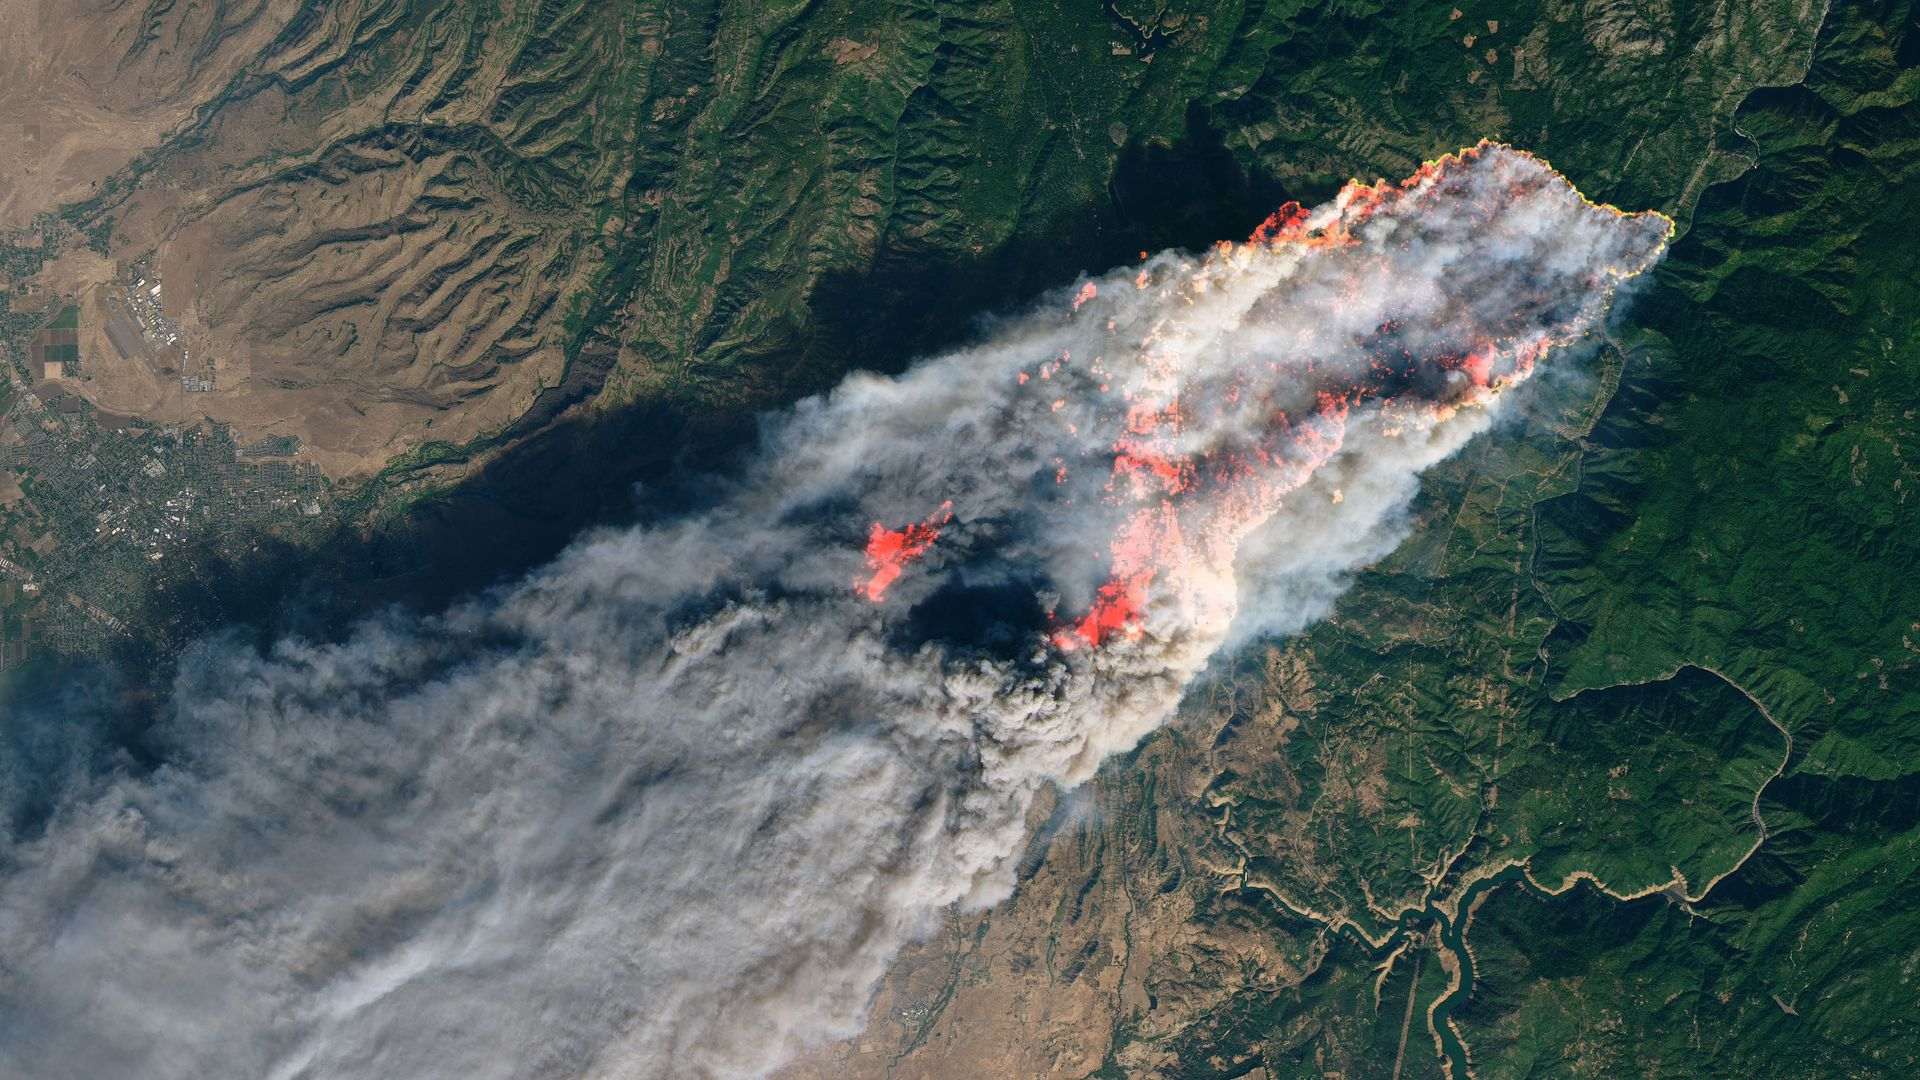 Aerial view of wildfire in paradise, california